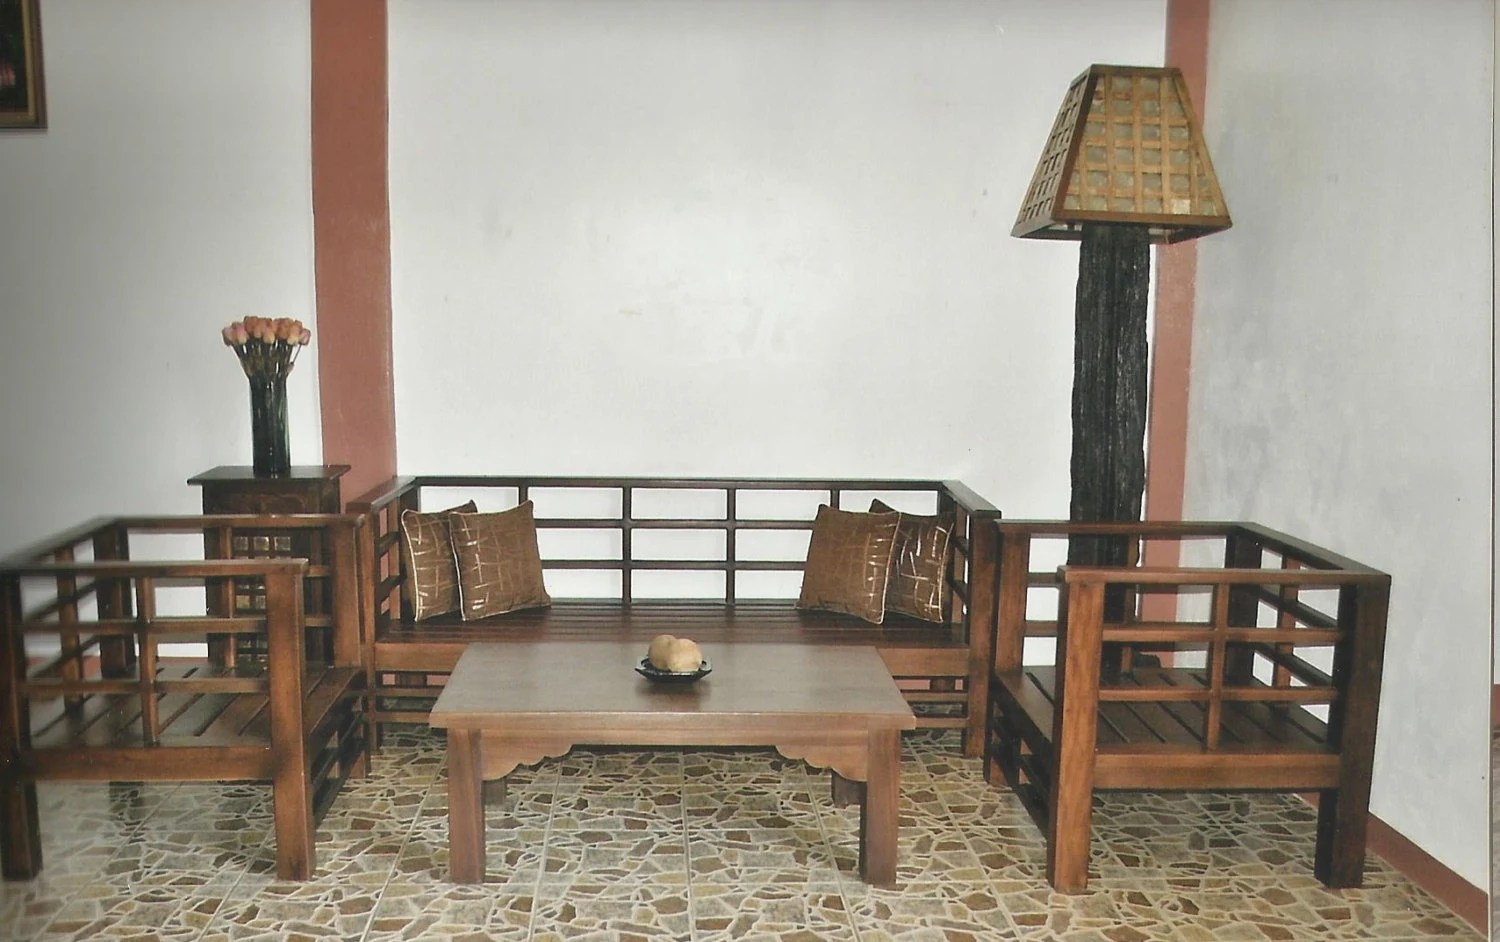 Bamboo Sala Set For Sale In Rizal Wooden Sala Set In The Philippines Rattan Furniture In